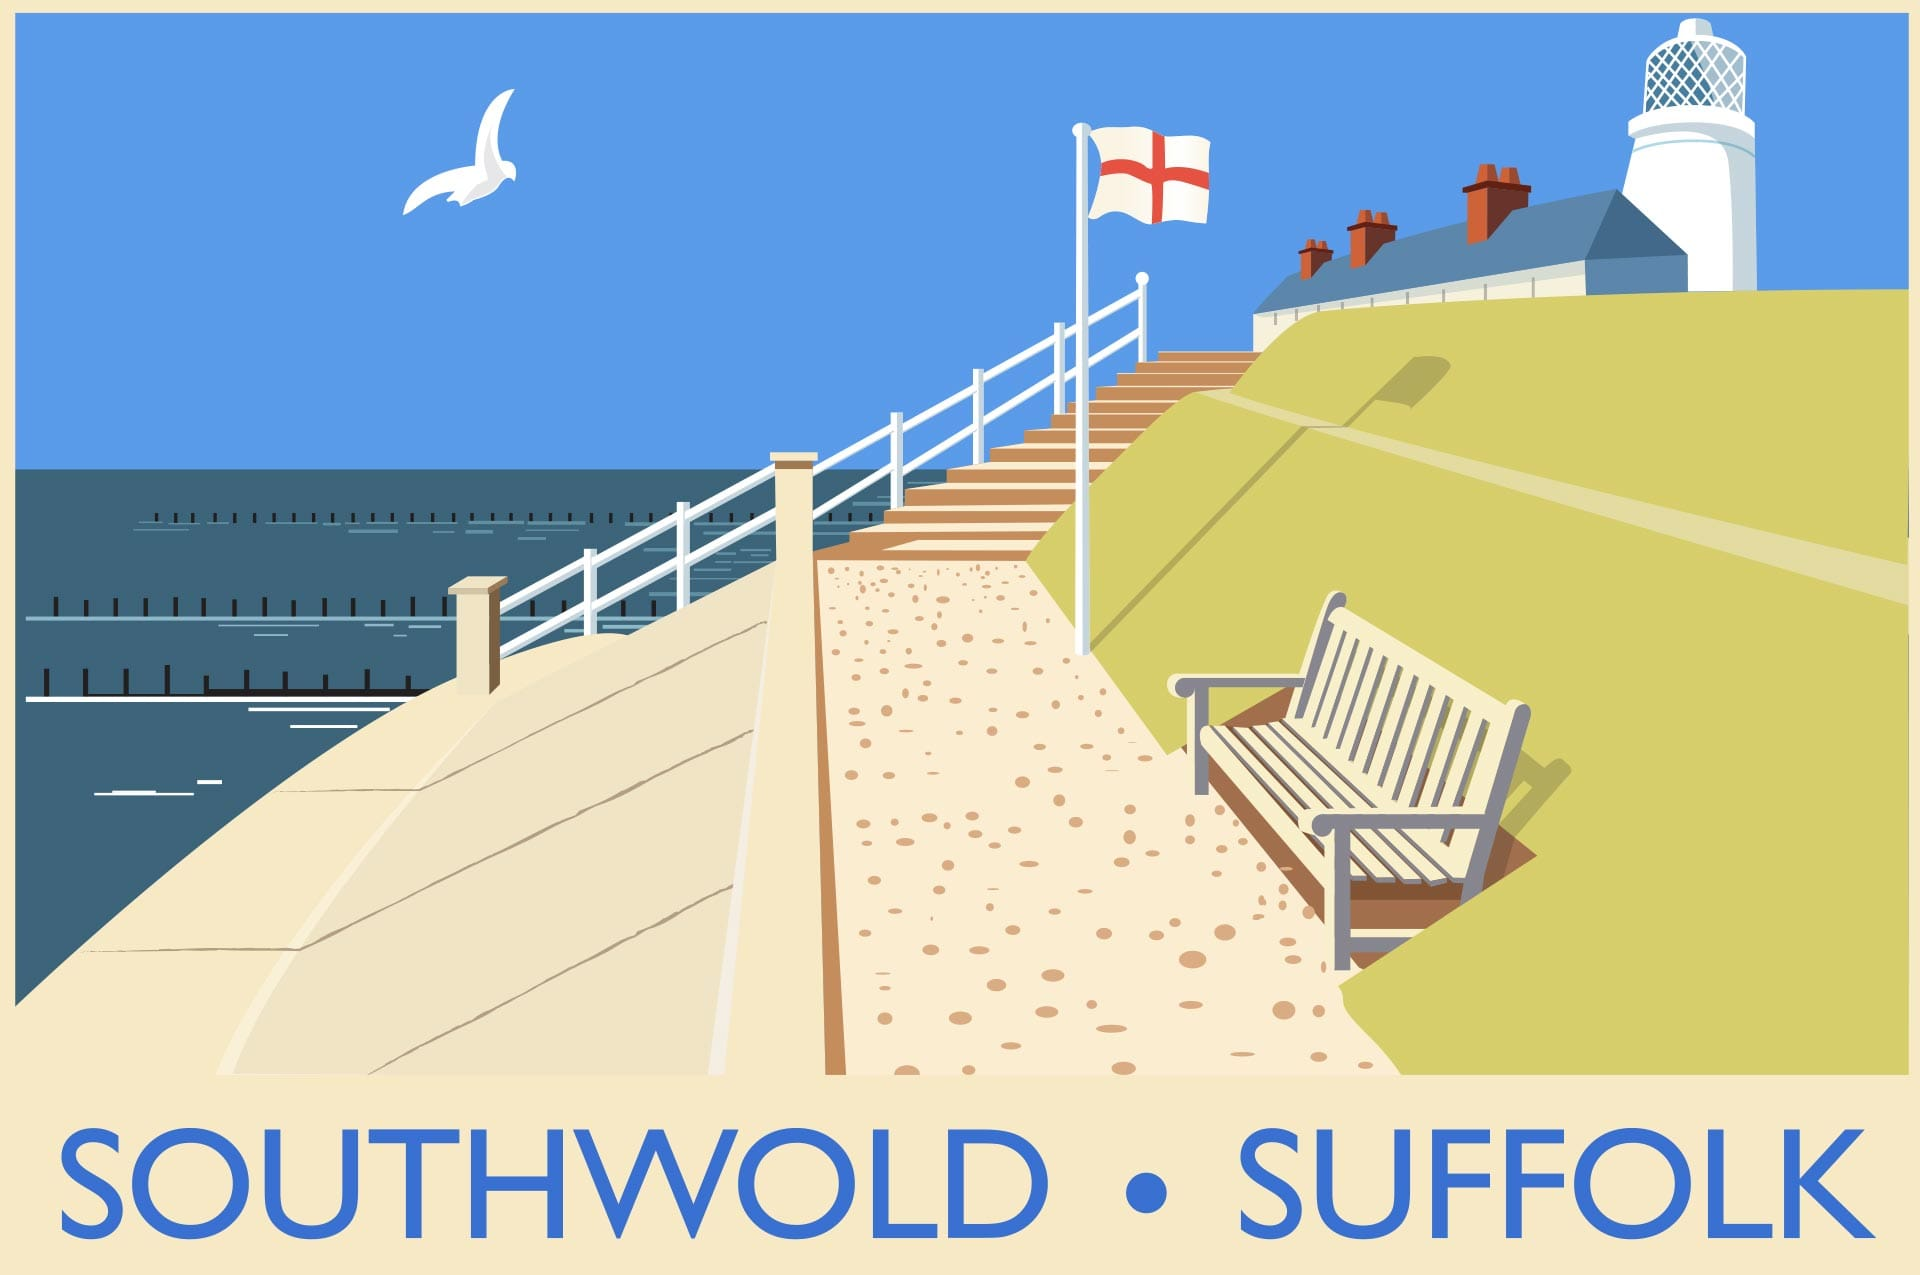 Illustrations - Southwold